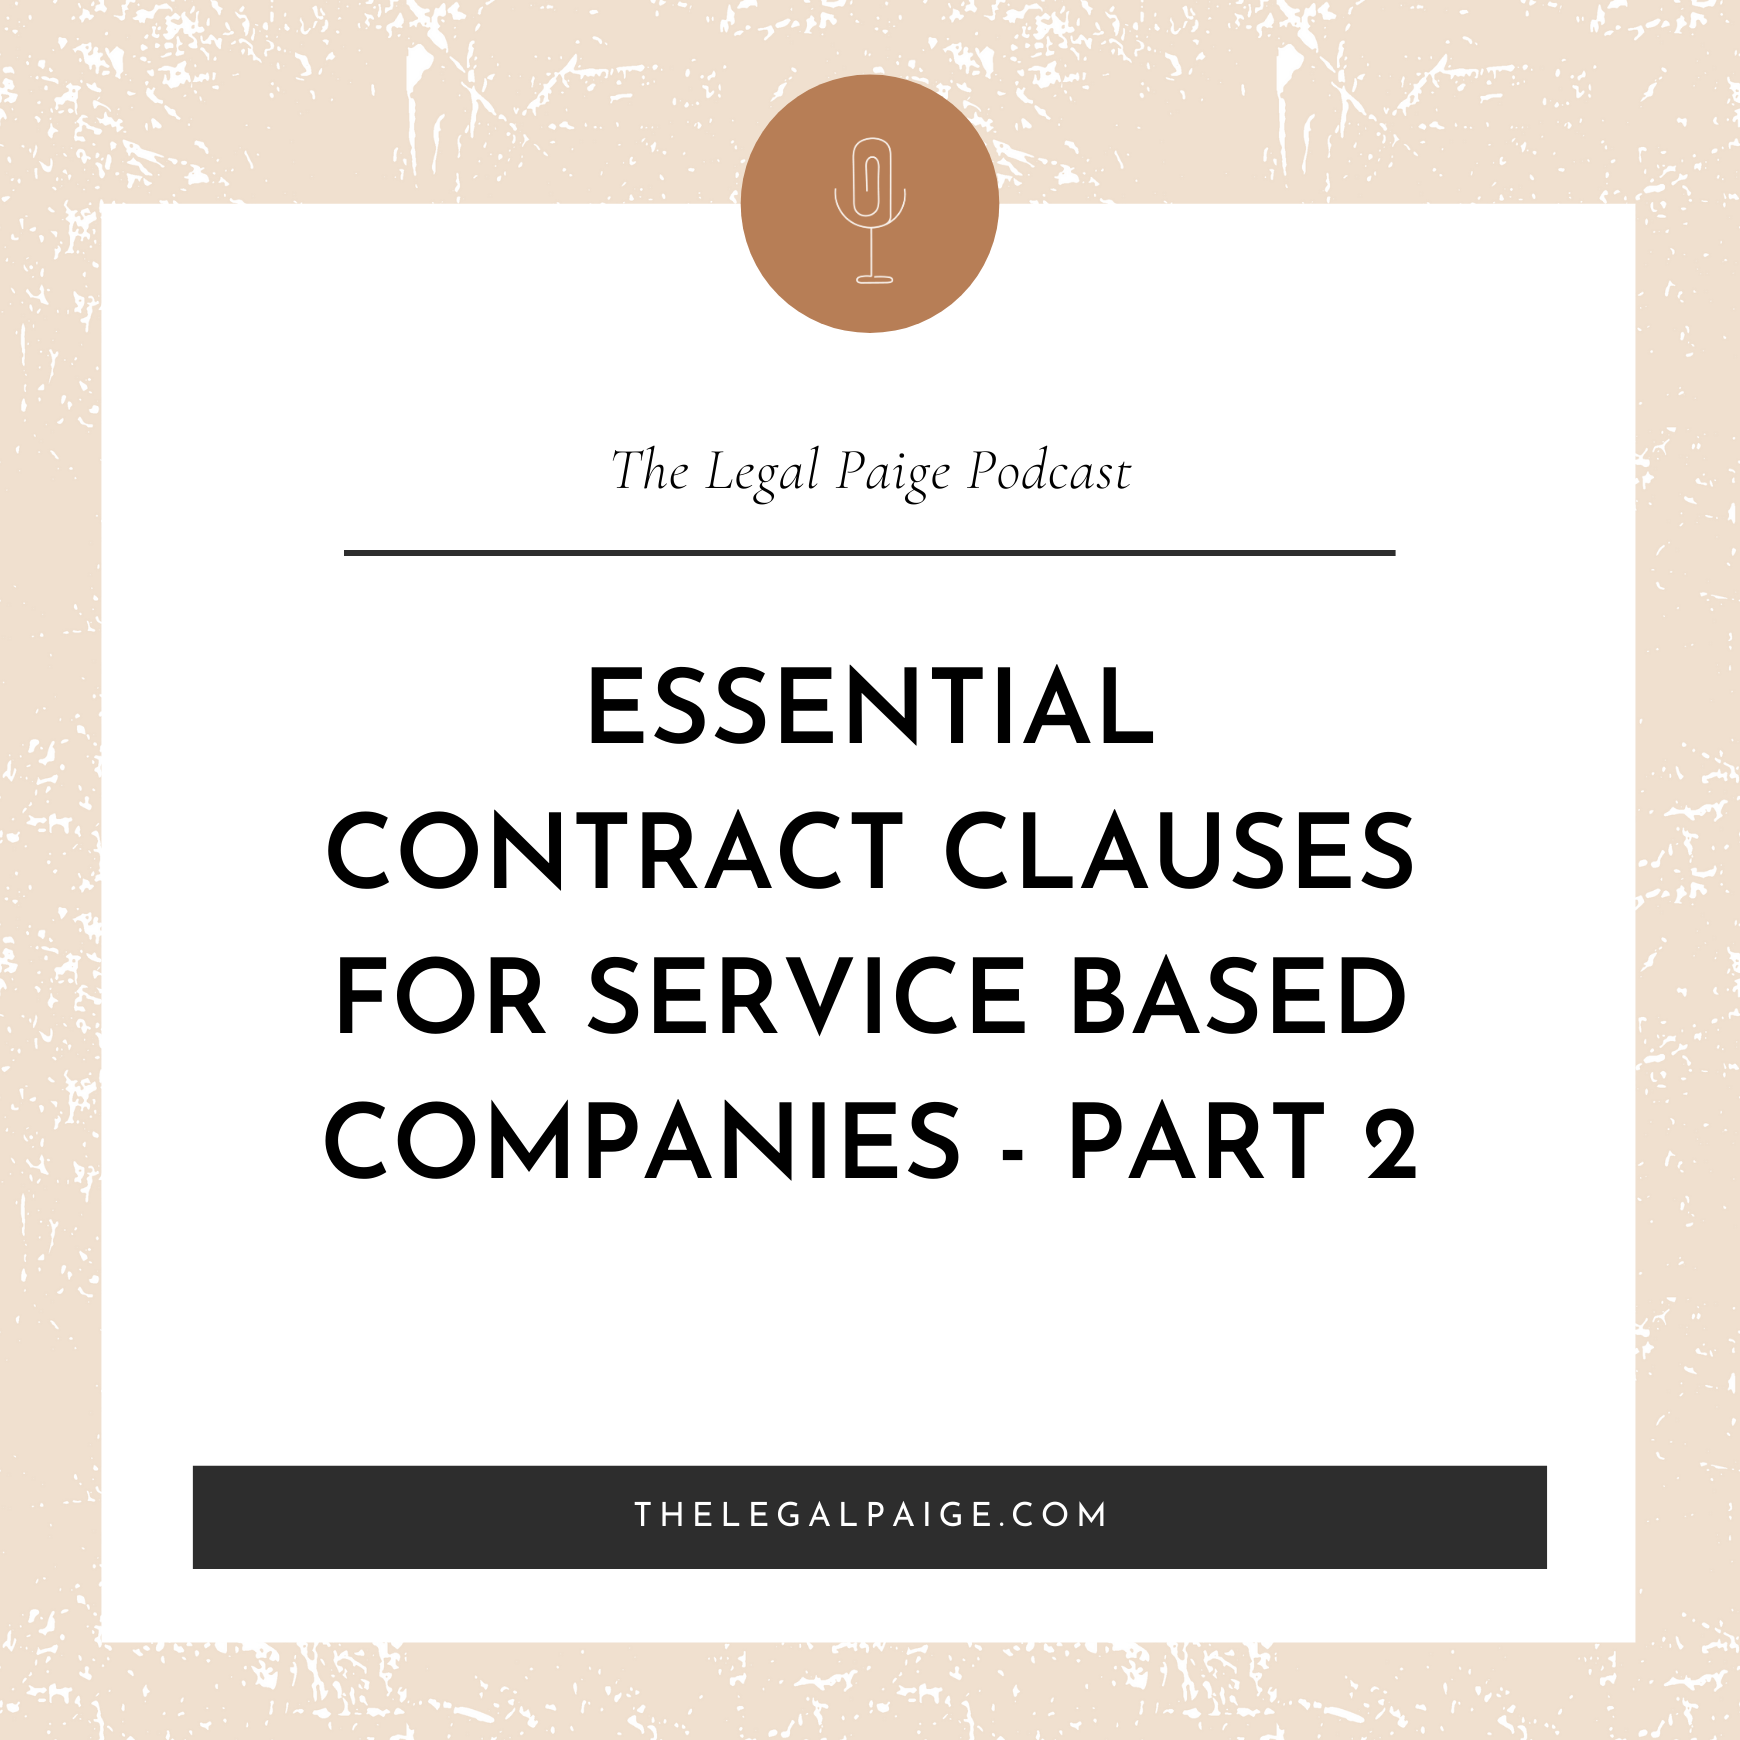 Essential Contract Clauses for Service Based Companies - Part 2